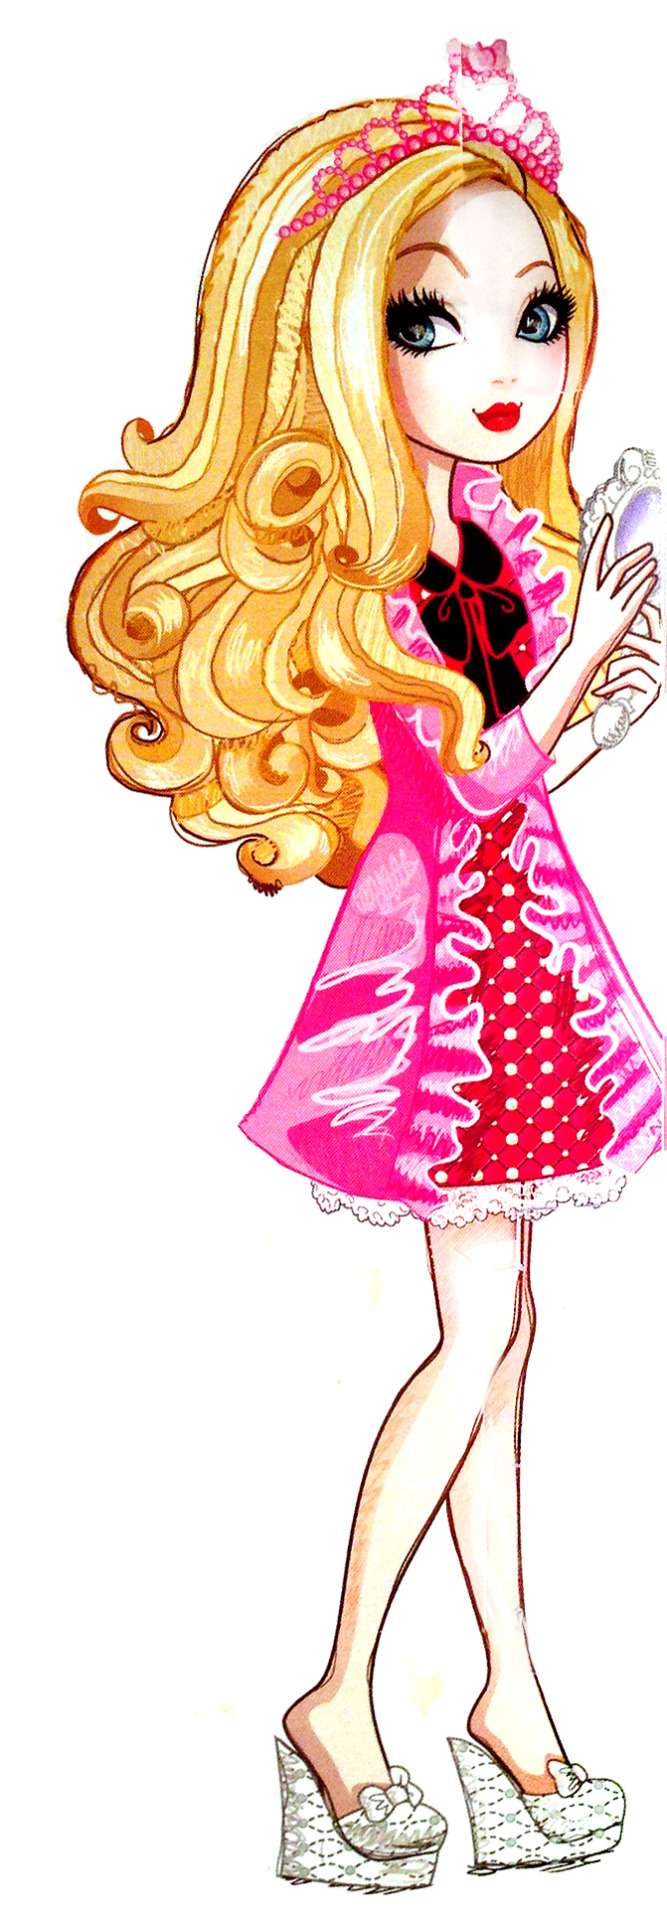 This is an image of Universal Ever After High Characters